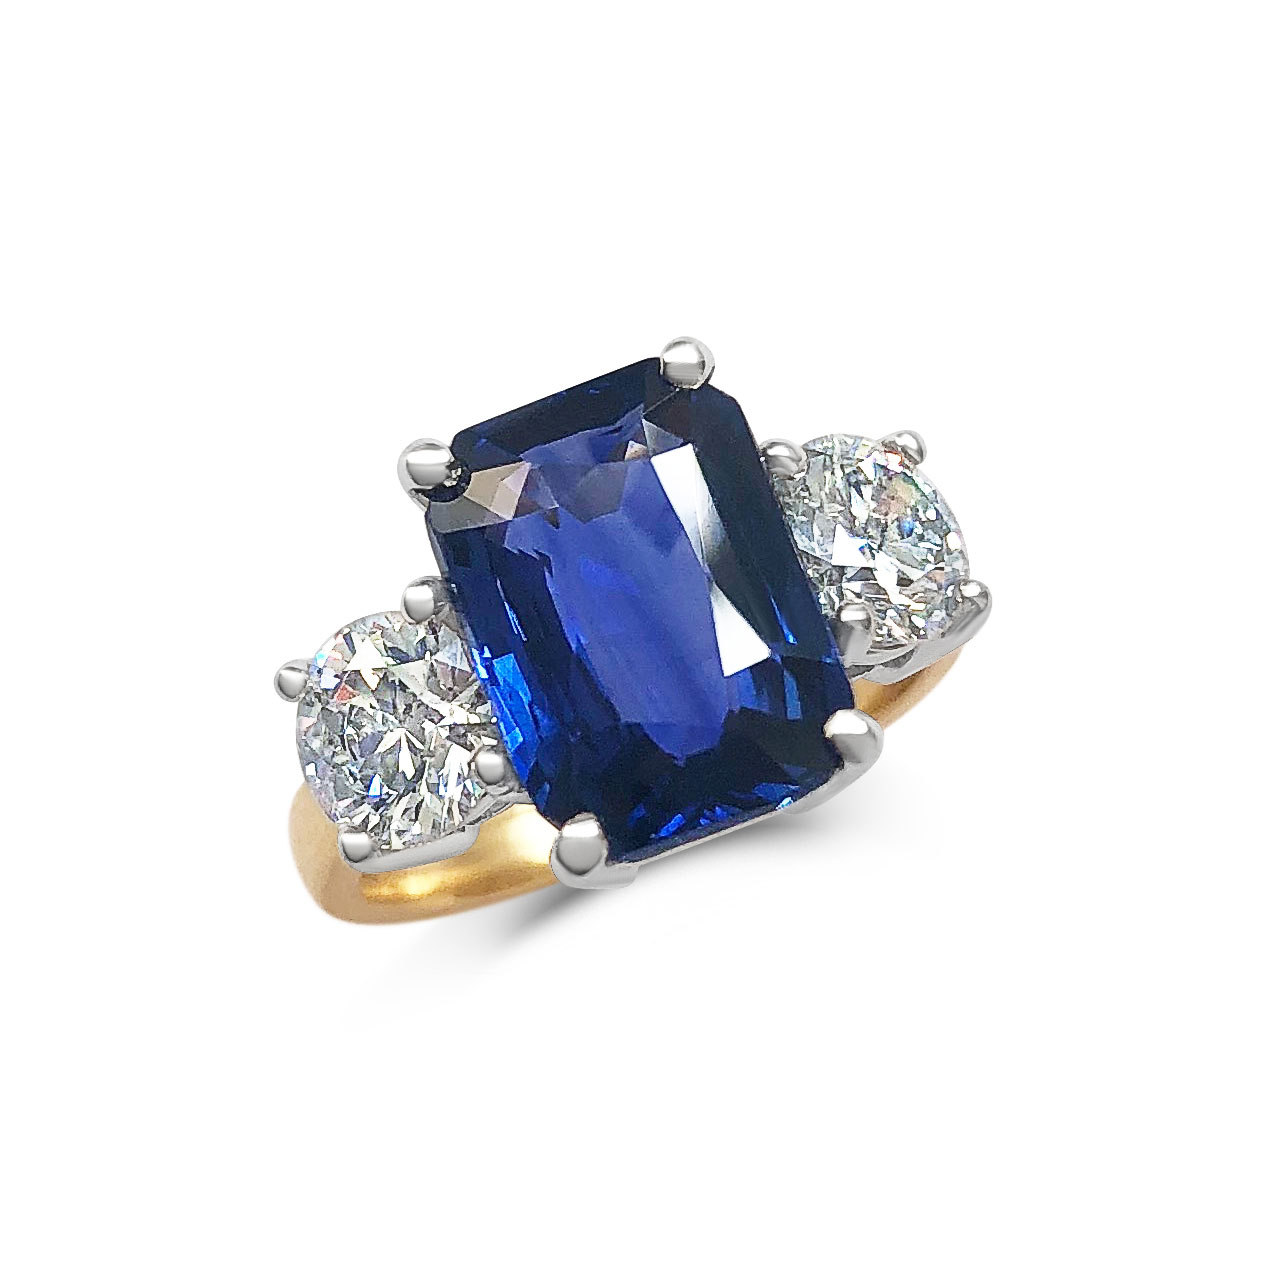 Emerald-cut Sapphire and diamond three stone ring set in 18ct yellow gold